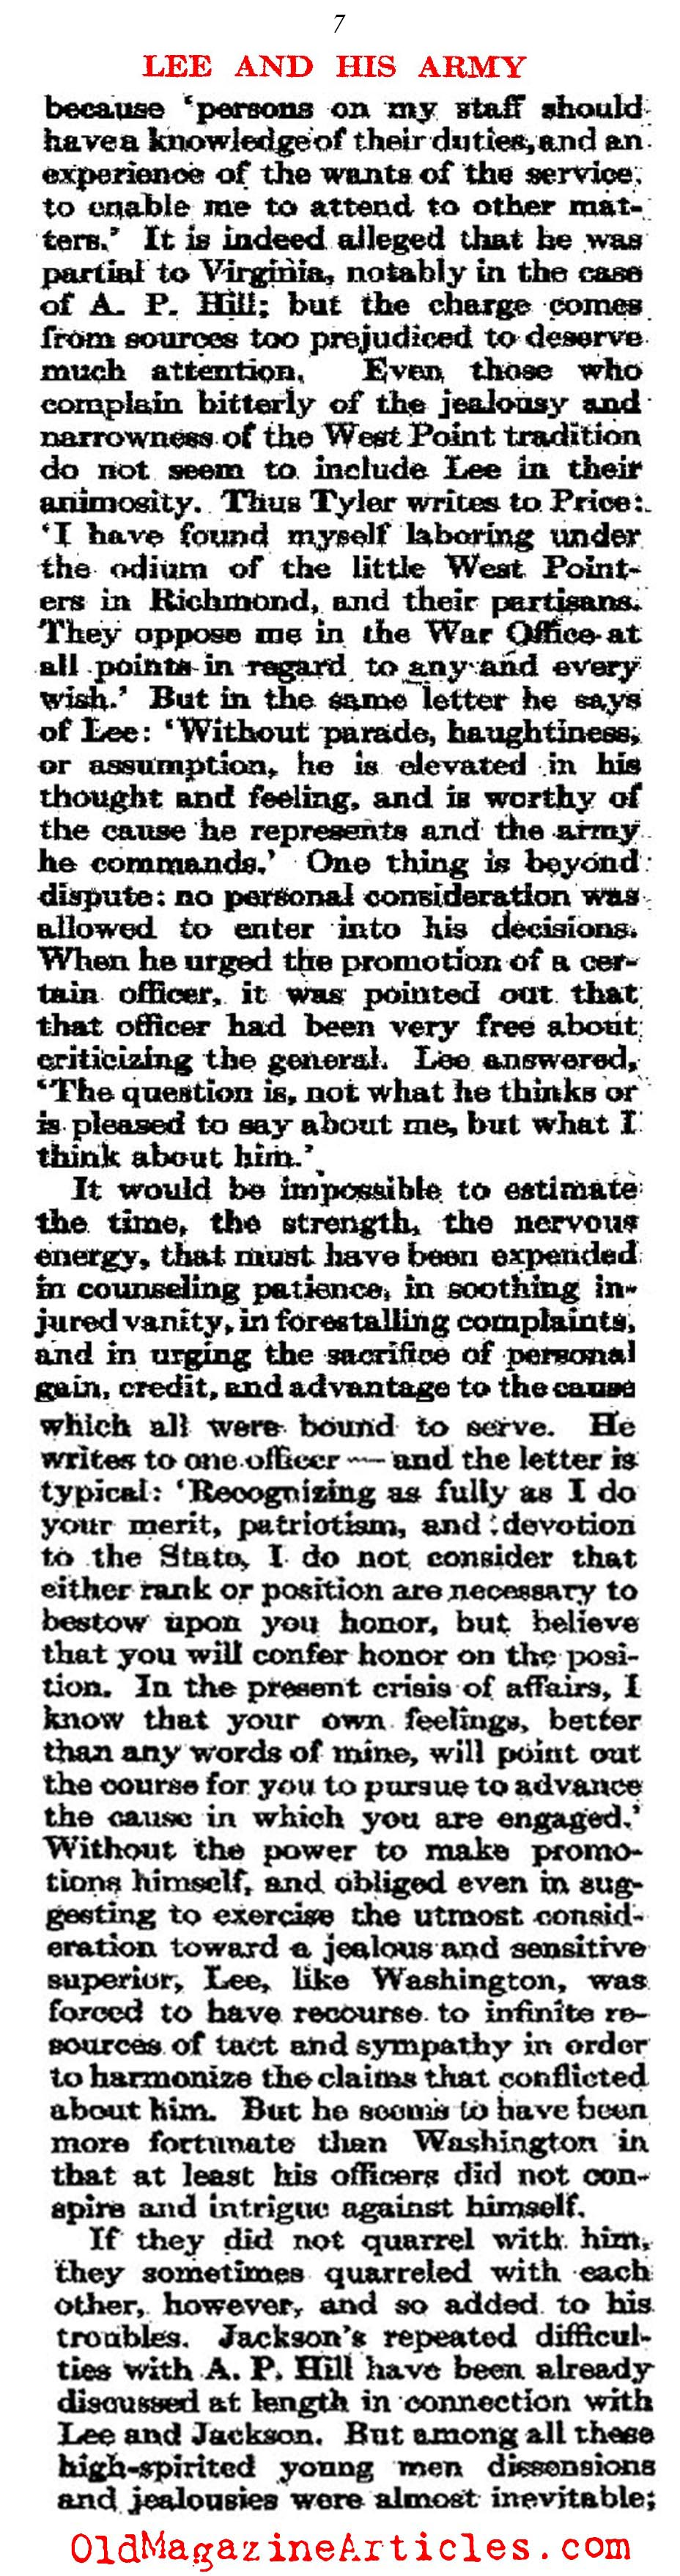 General Lee's Unique Bond with his Army  (Atlantic Monthly, 1911)